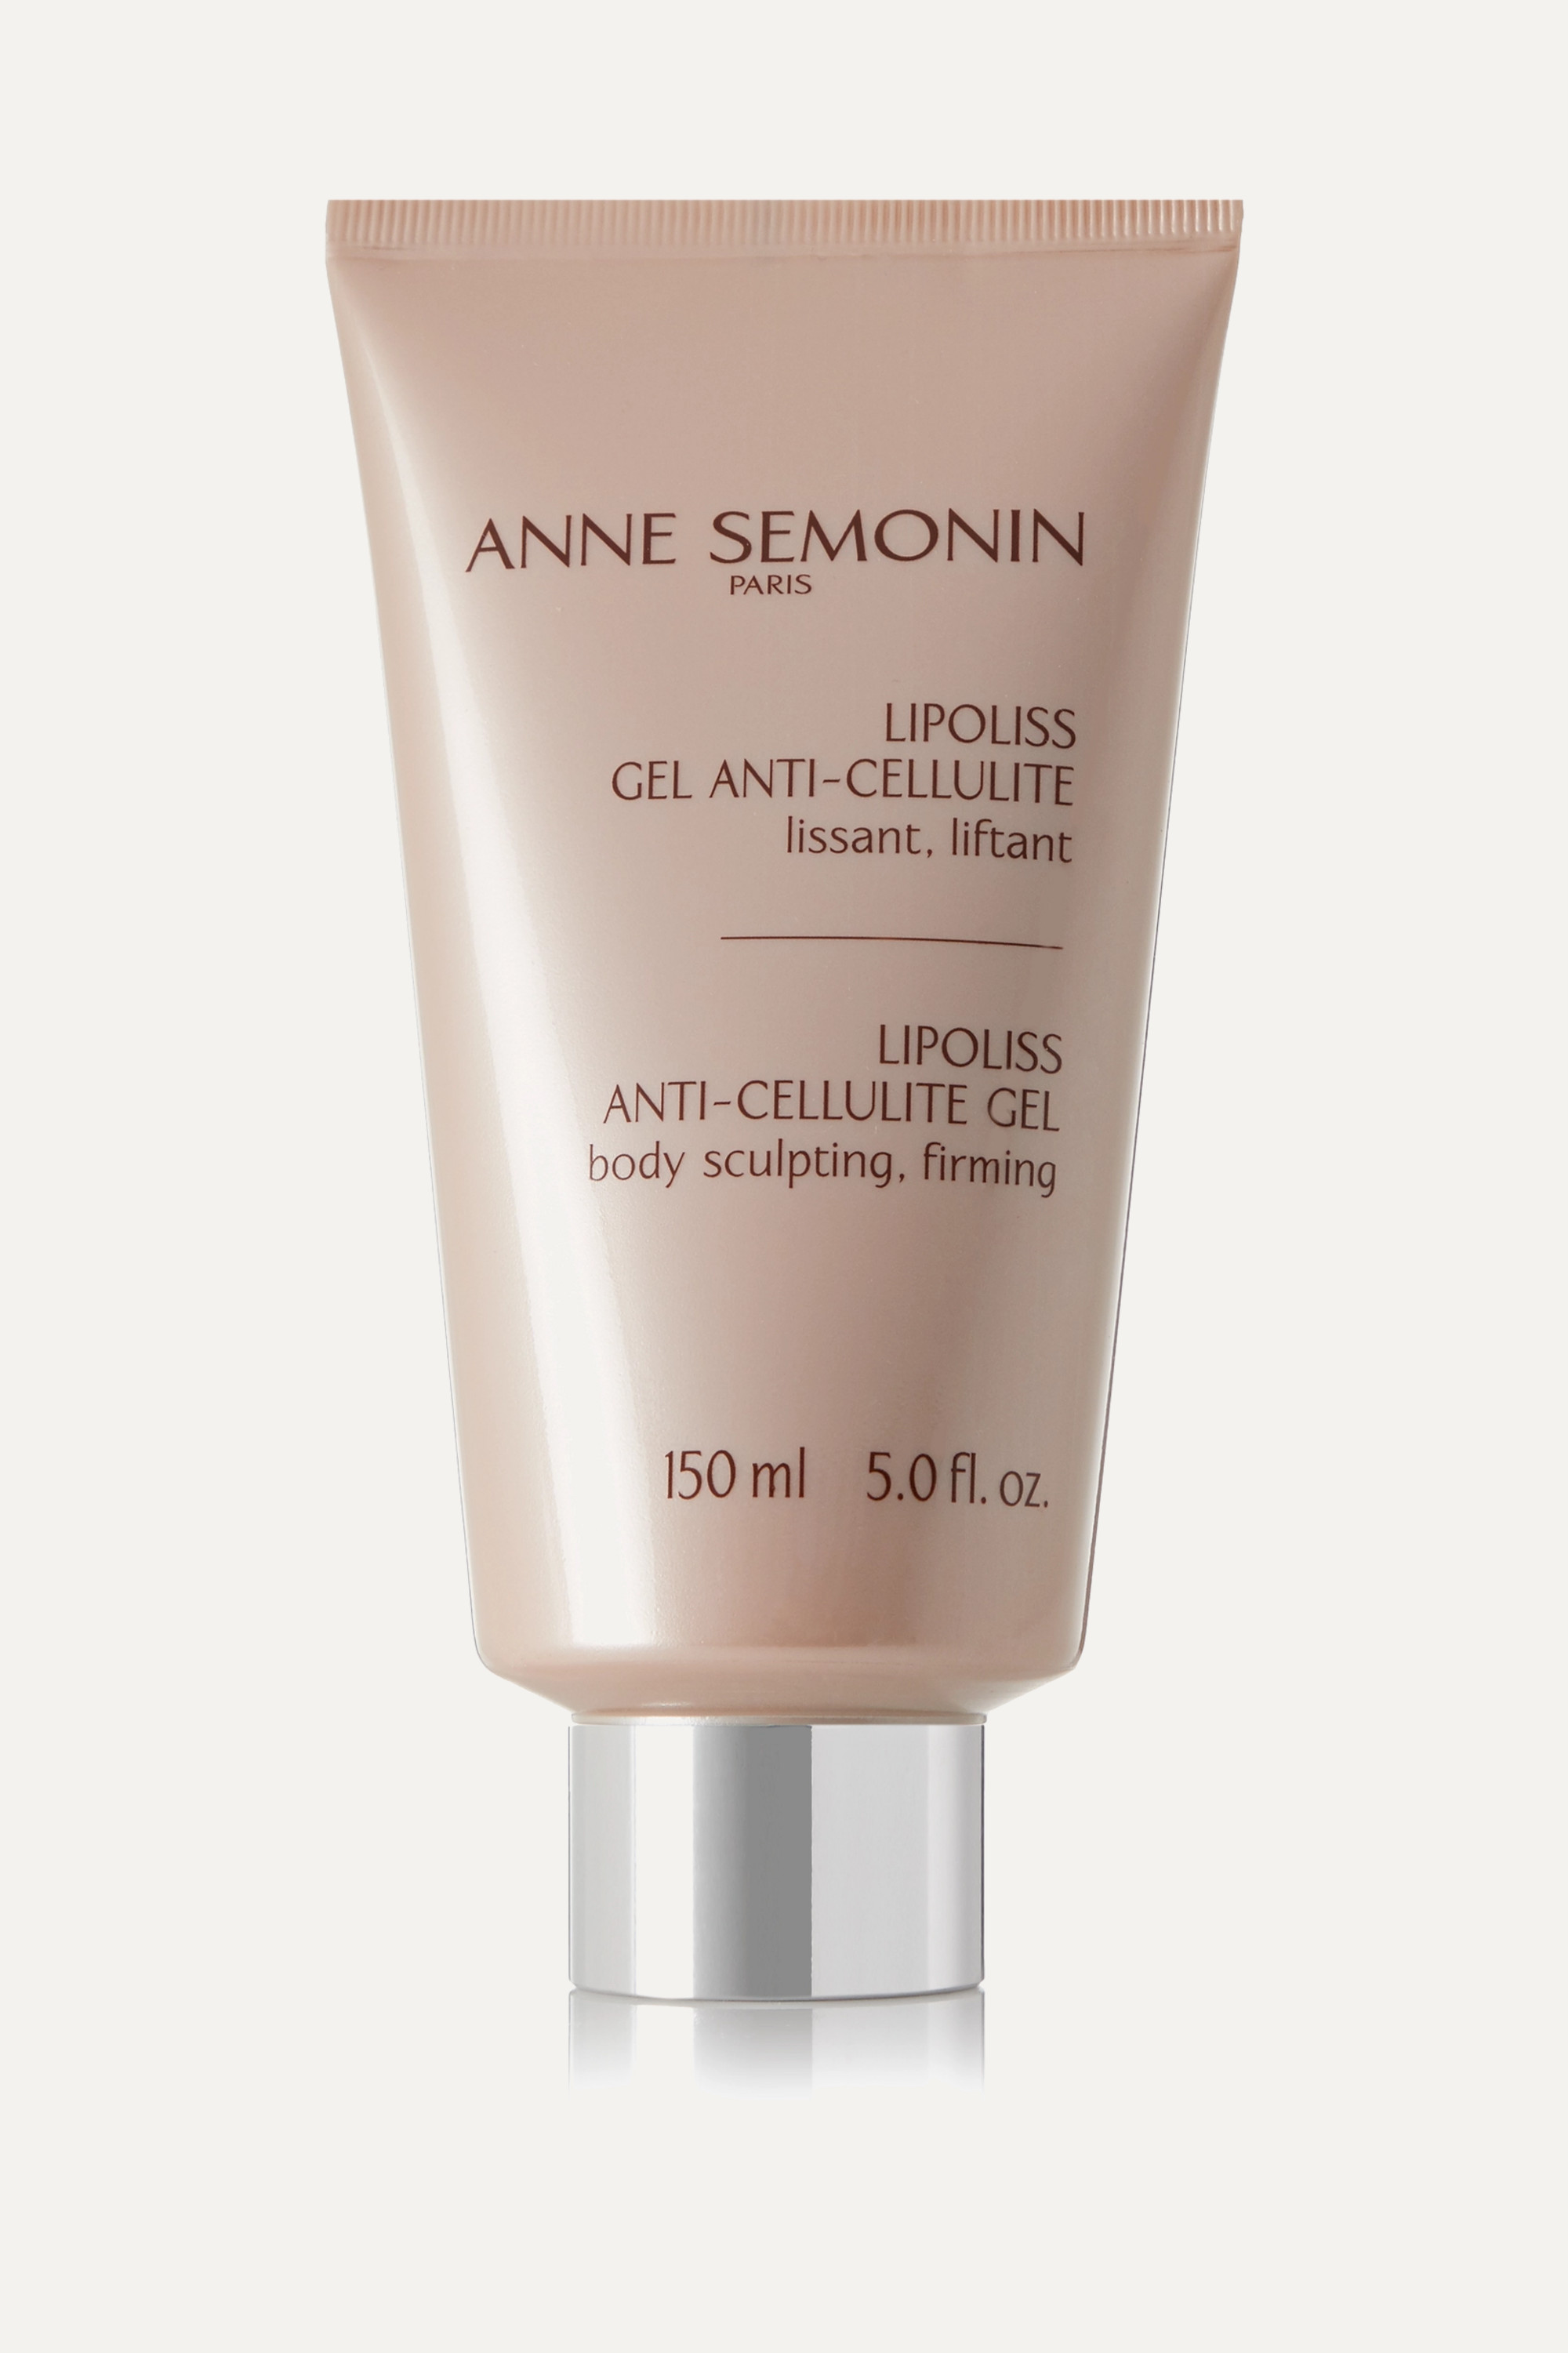 Anne Semonin Lipoliss - Anti-Cellulite Gel, 150ml